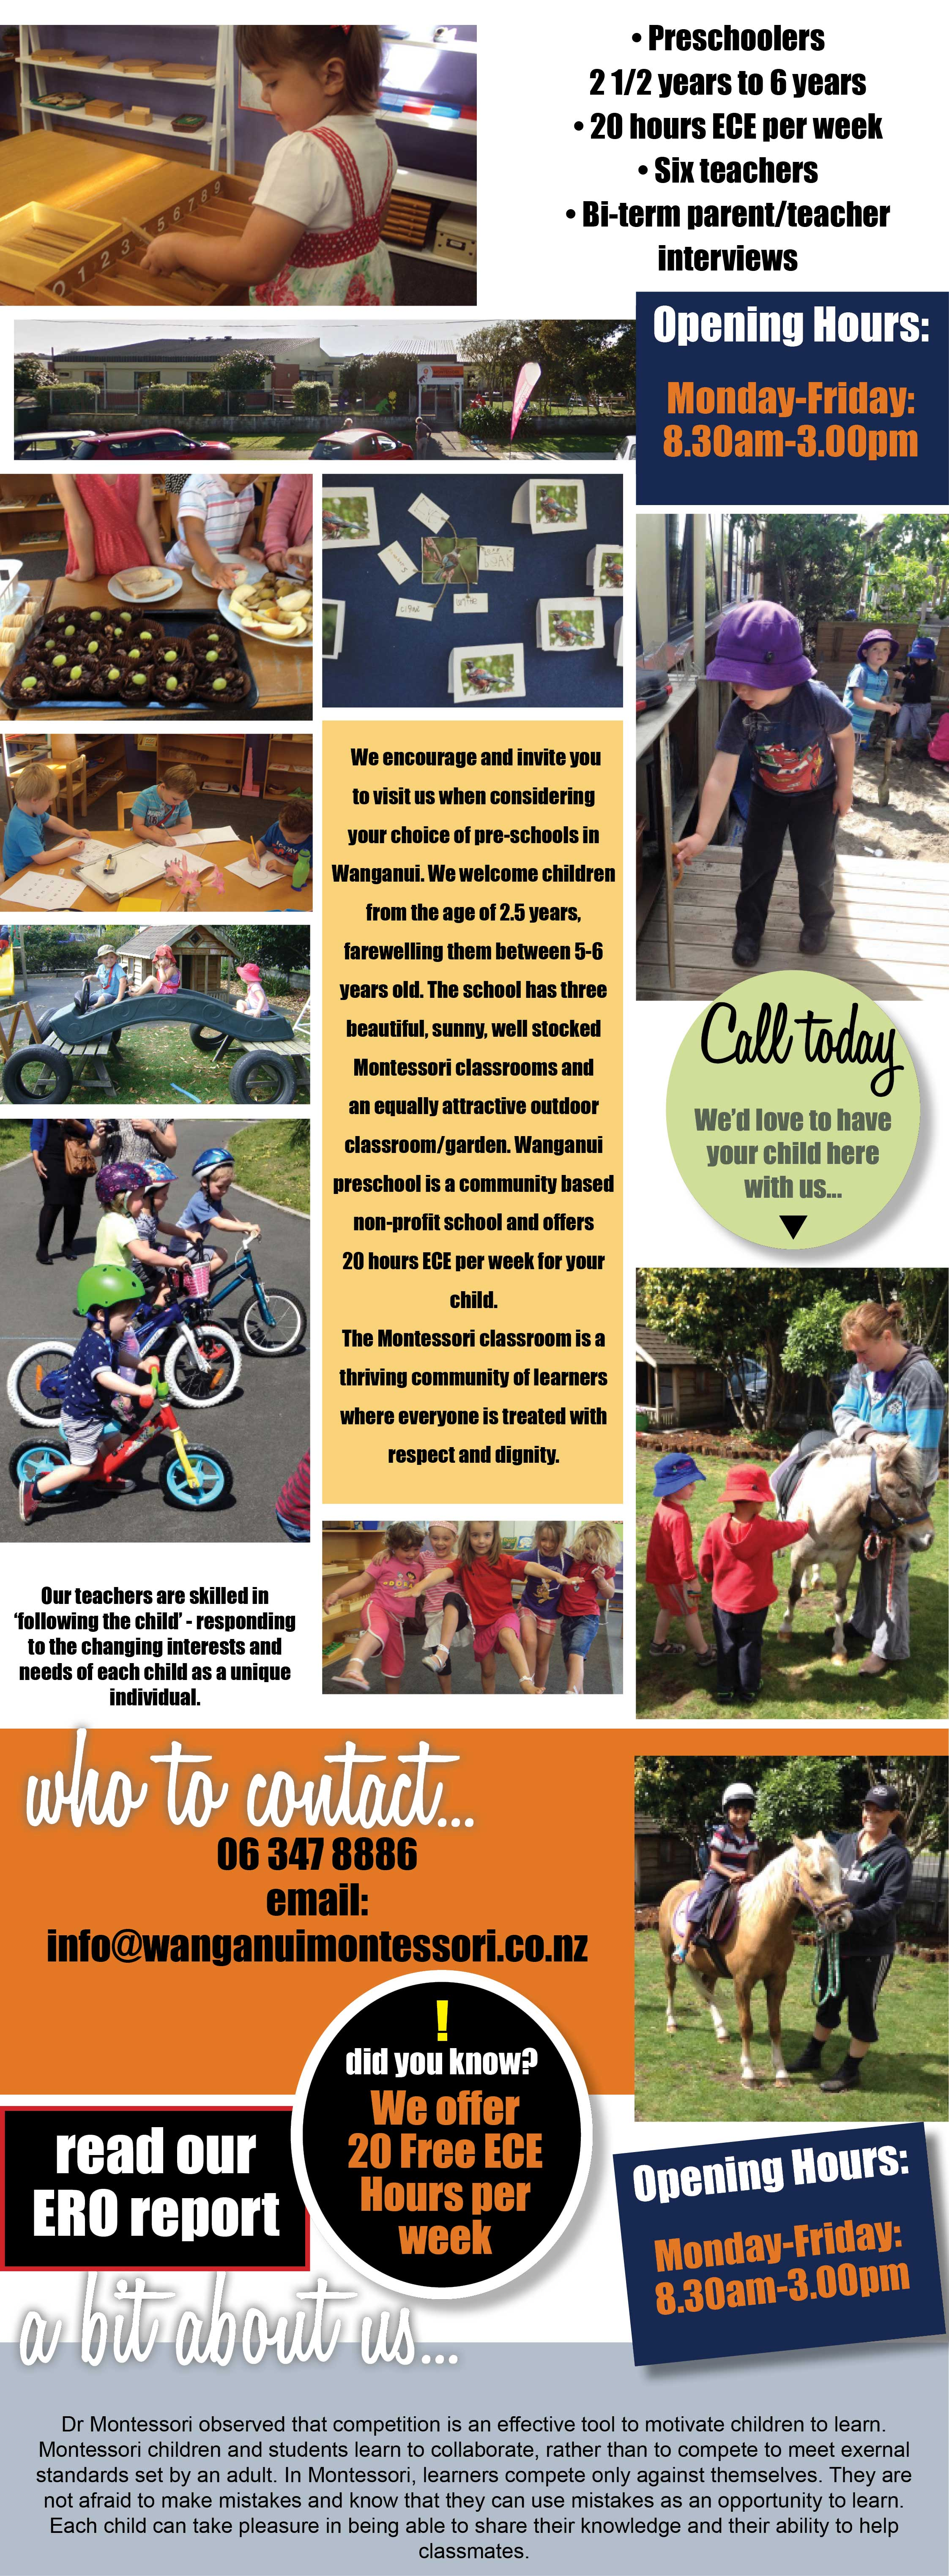 Welcome to Wanganui Montessori Pre-school